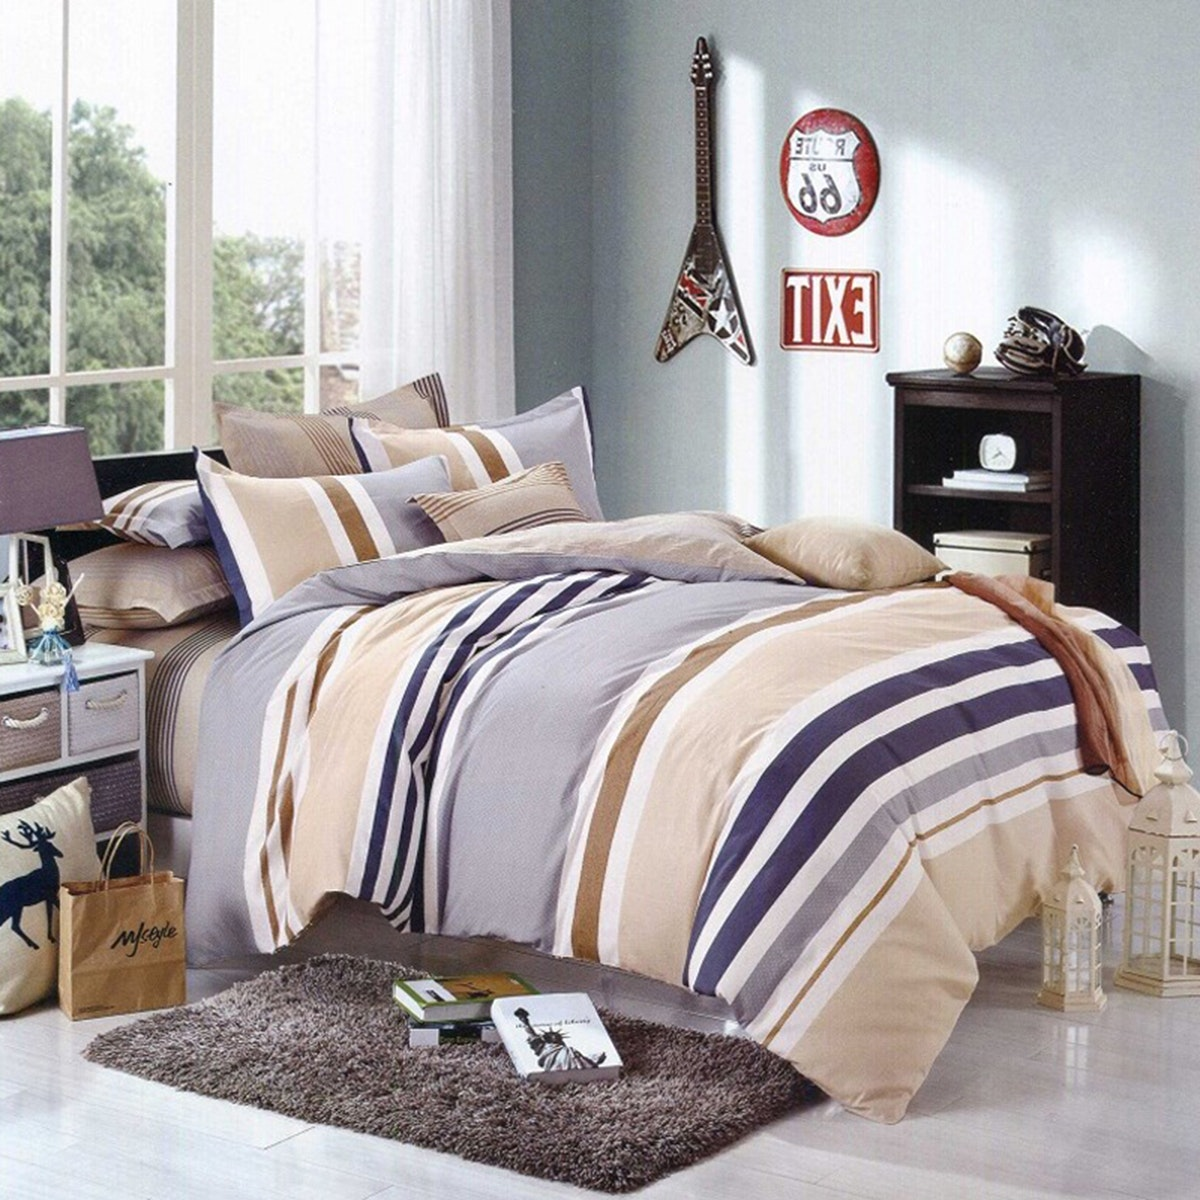 Sleep Buddy Set Sprei Dan Bed Cover Brown Line Katun Taiwan 160X200X30